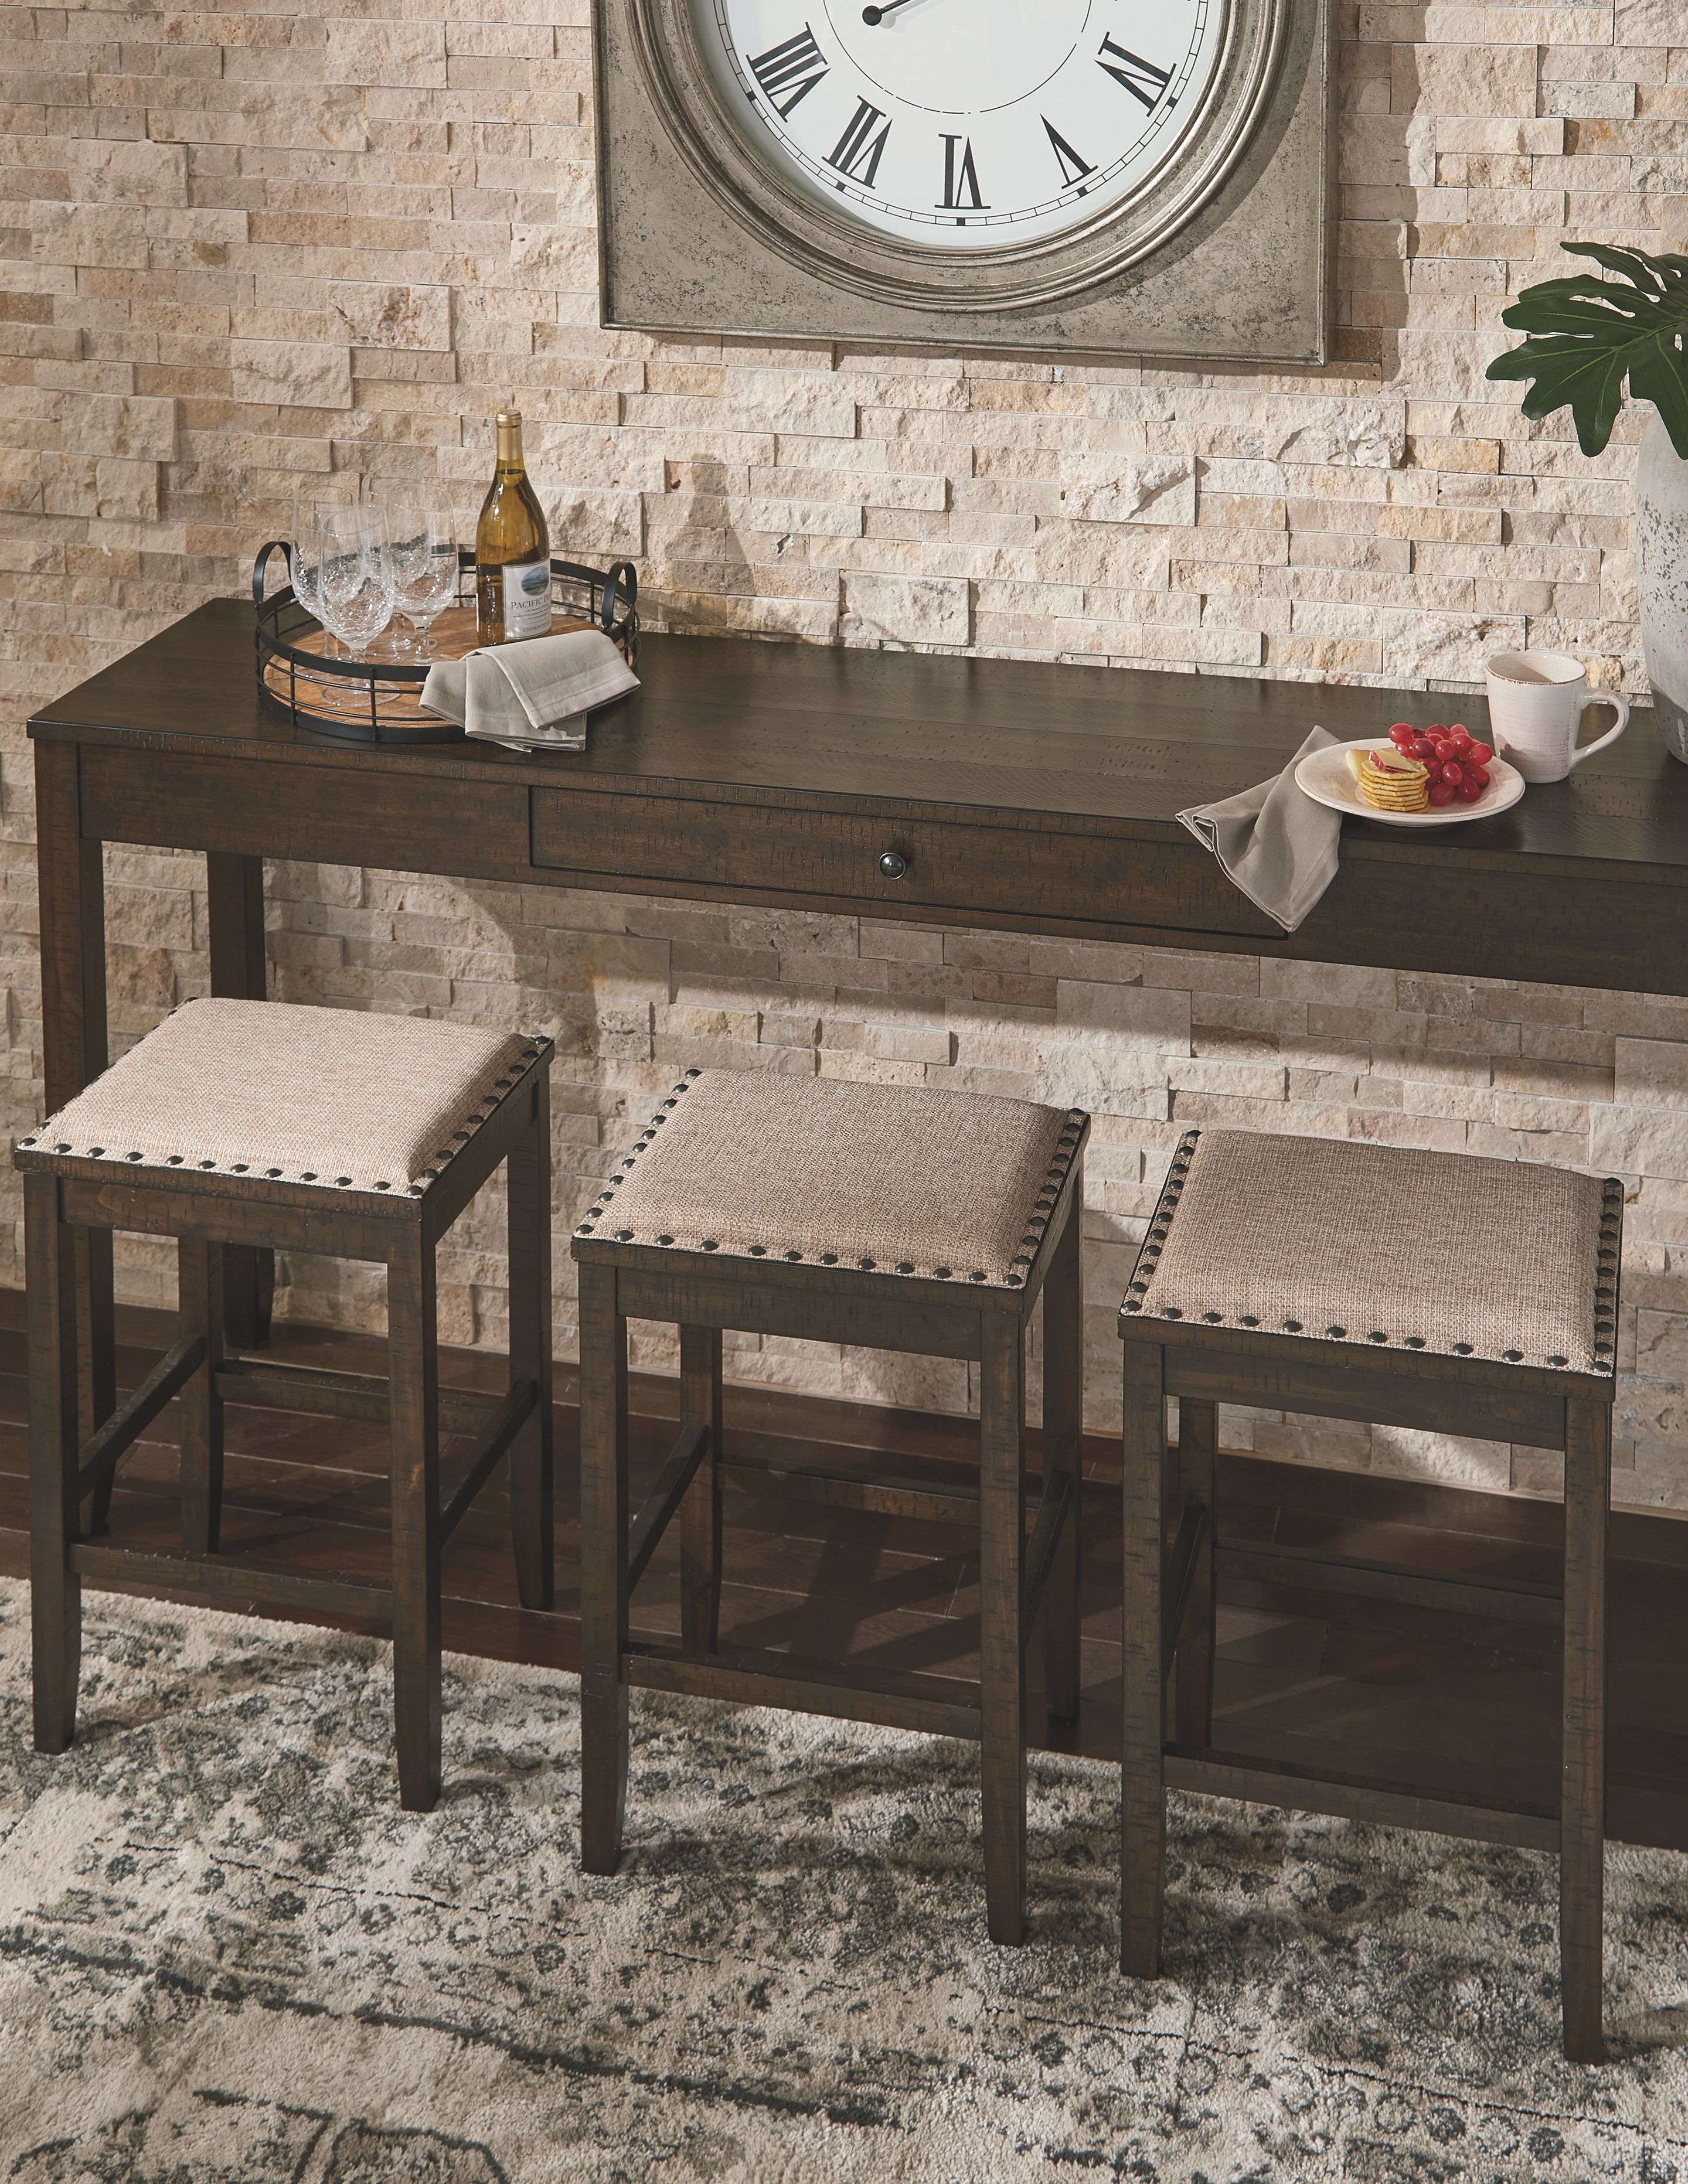 Rokane Counter Height Dining Table And Bar Stools Set Of 4 Ashley Furniture Homestore Counter Height Dining Table Counter Height Dining Room Tables Breakfast Nook Dining Set